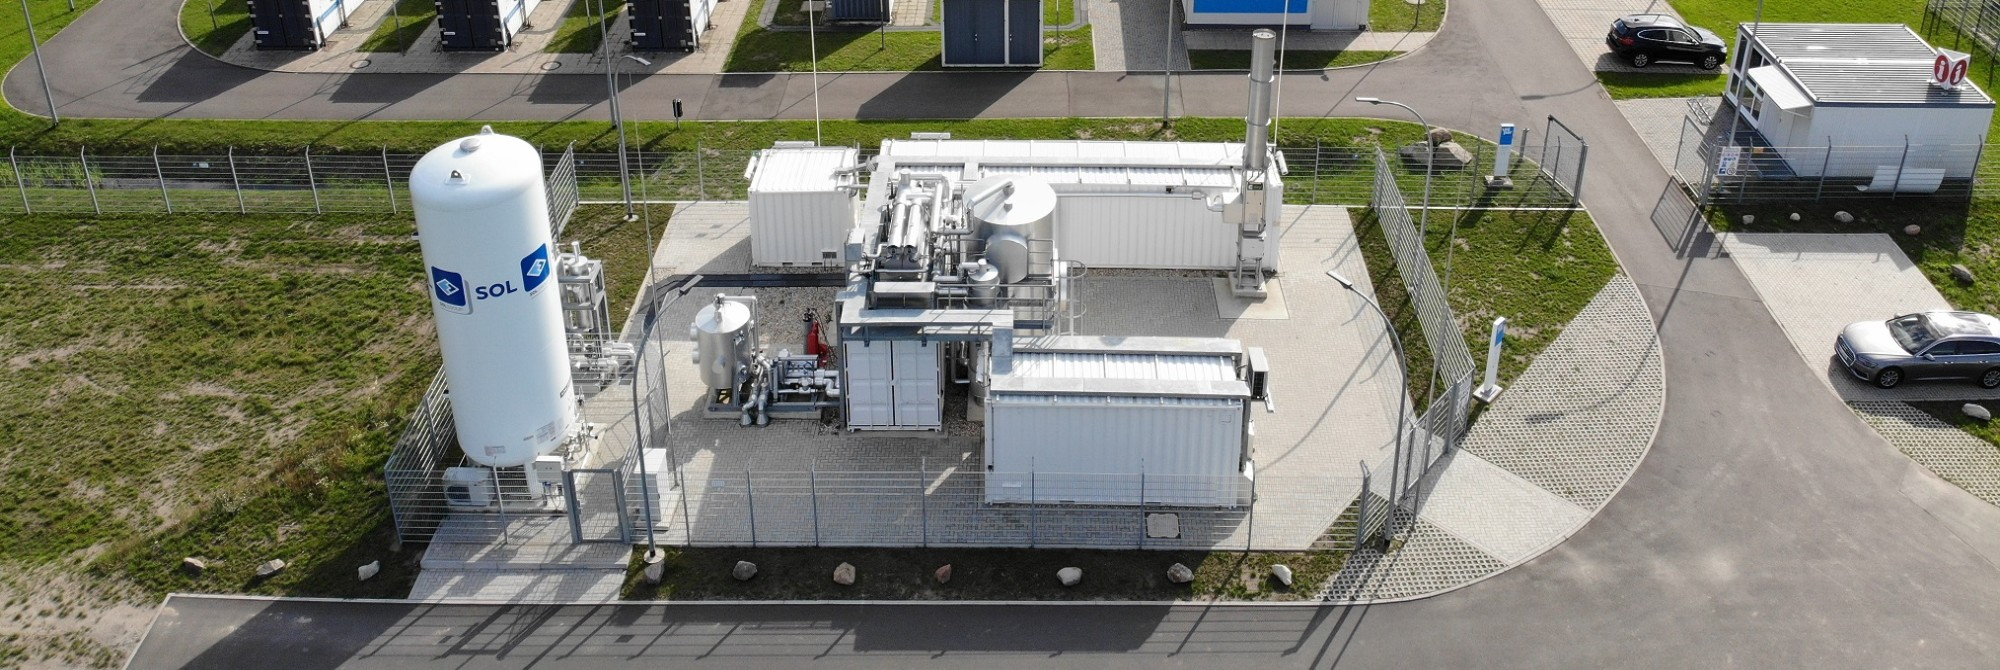 Synthetic Natural Gas (SNG) by thyssenkrupp Industrial Solutions